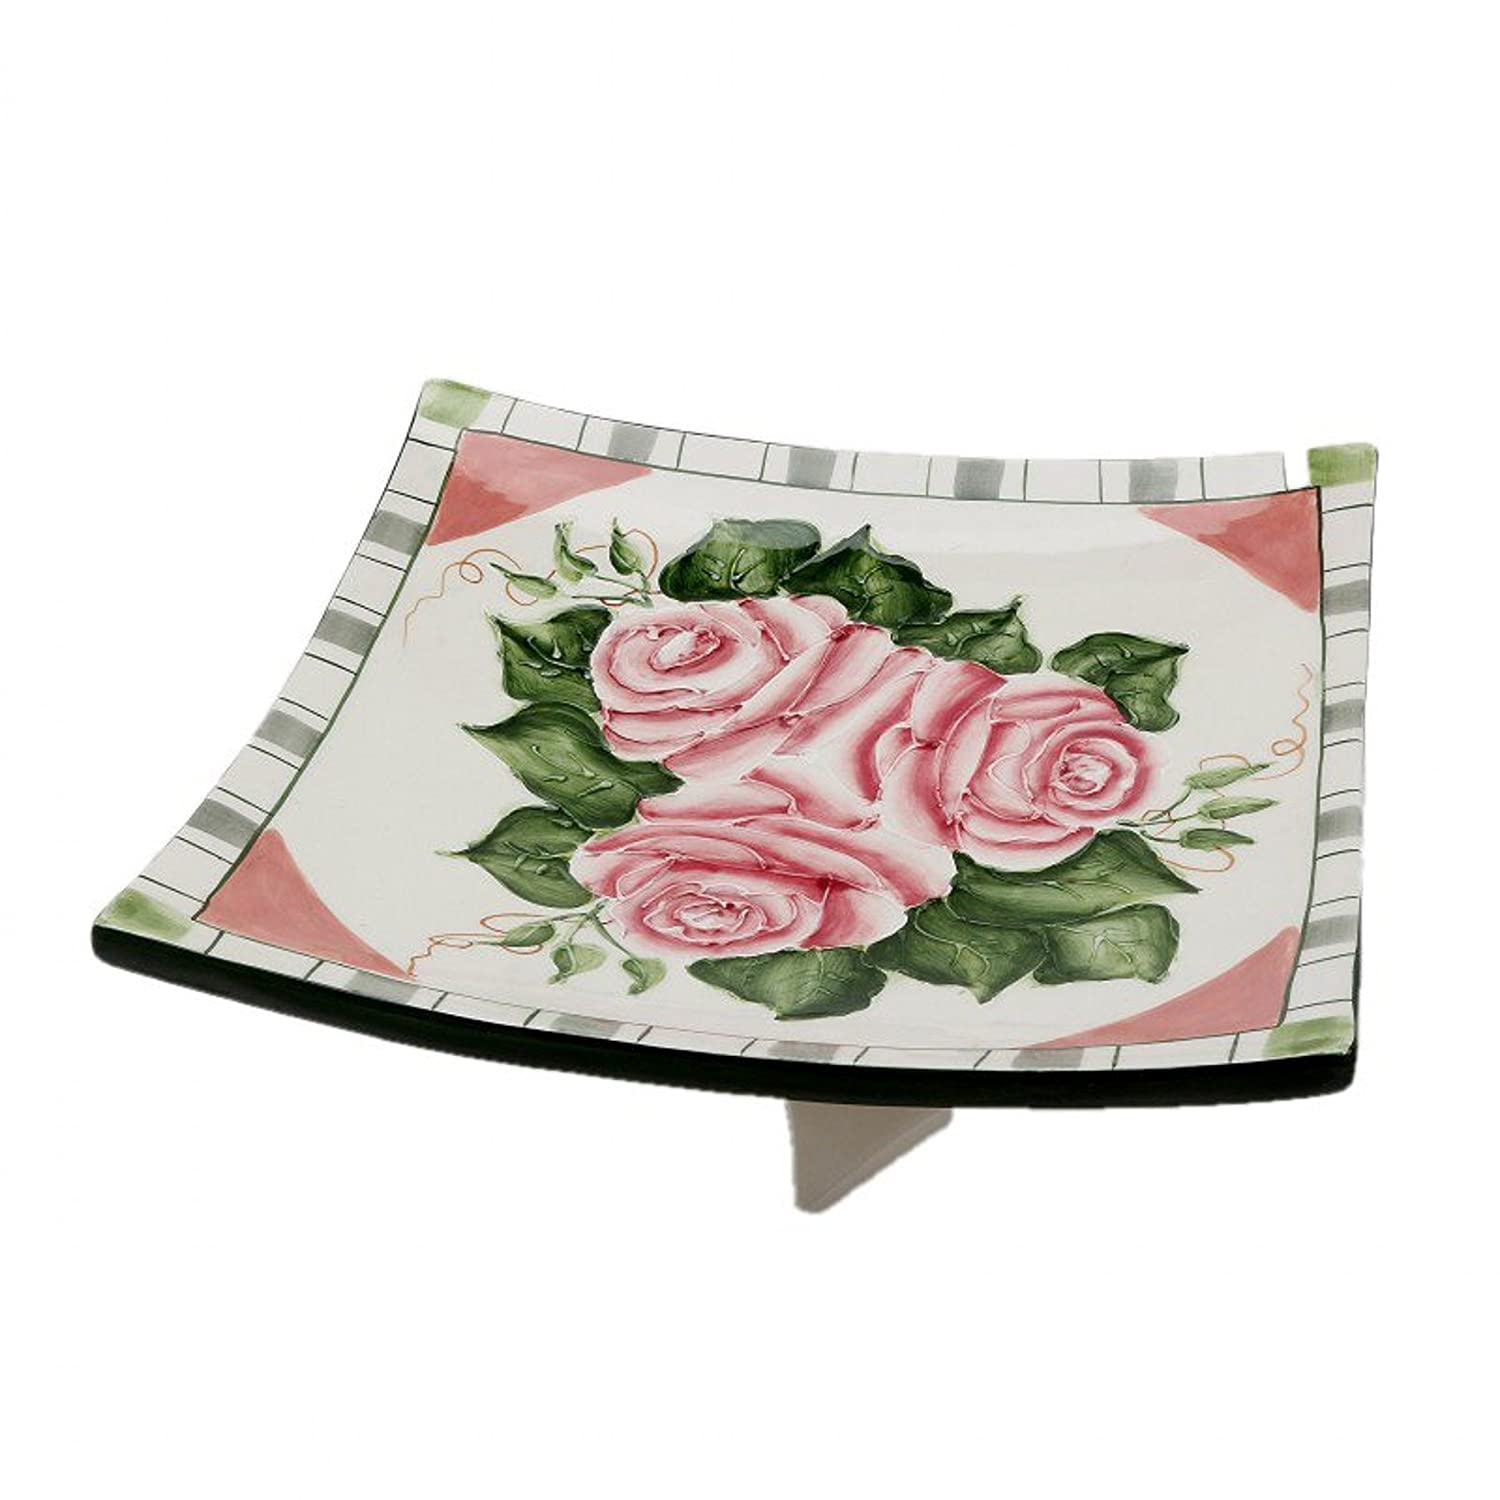 Cosmos Gifts 306-03 Romantic Rose Collection Ceramic Plate